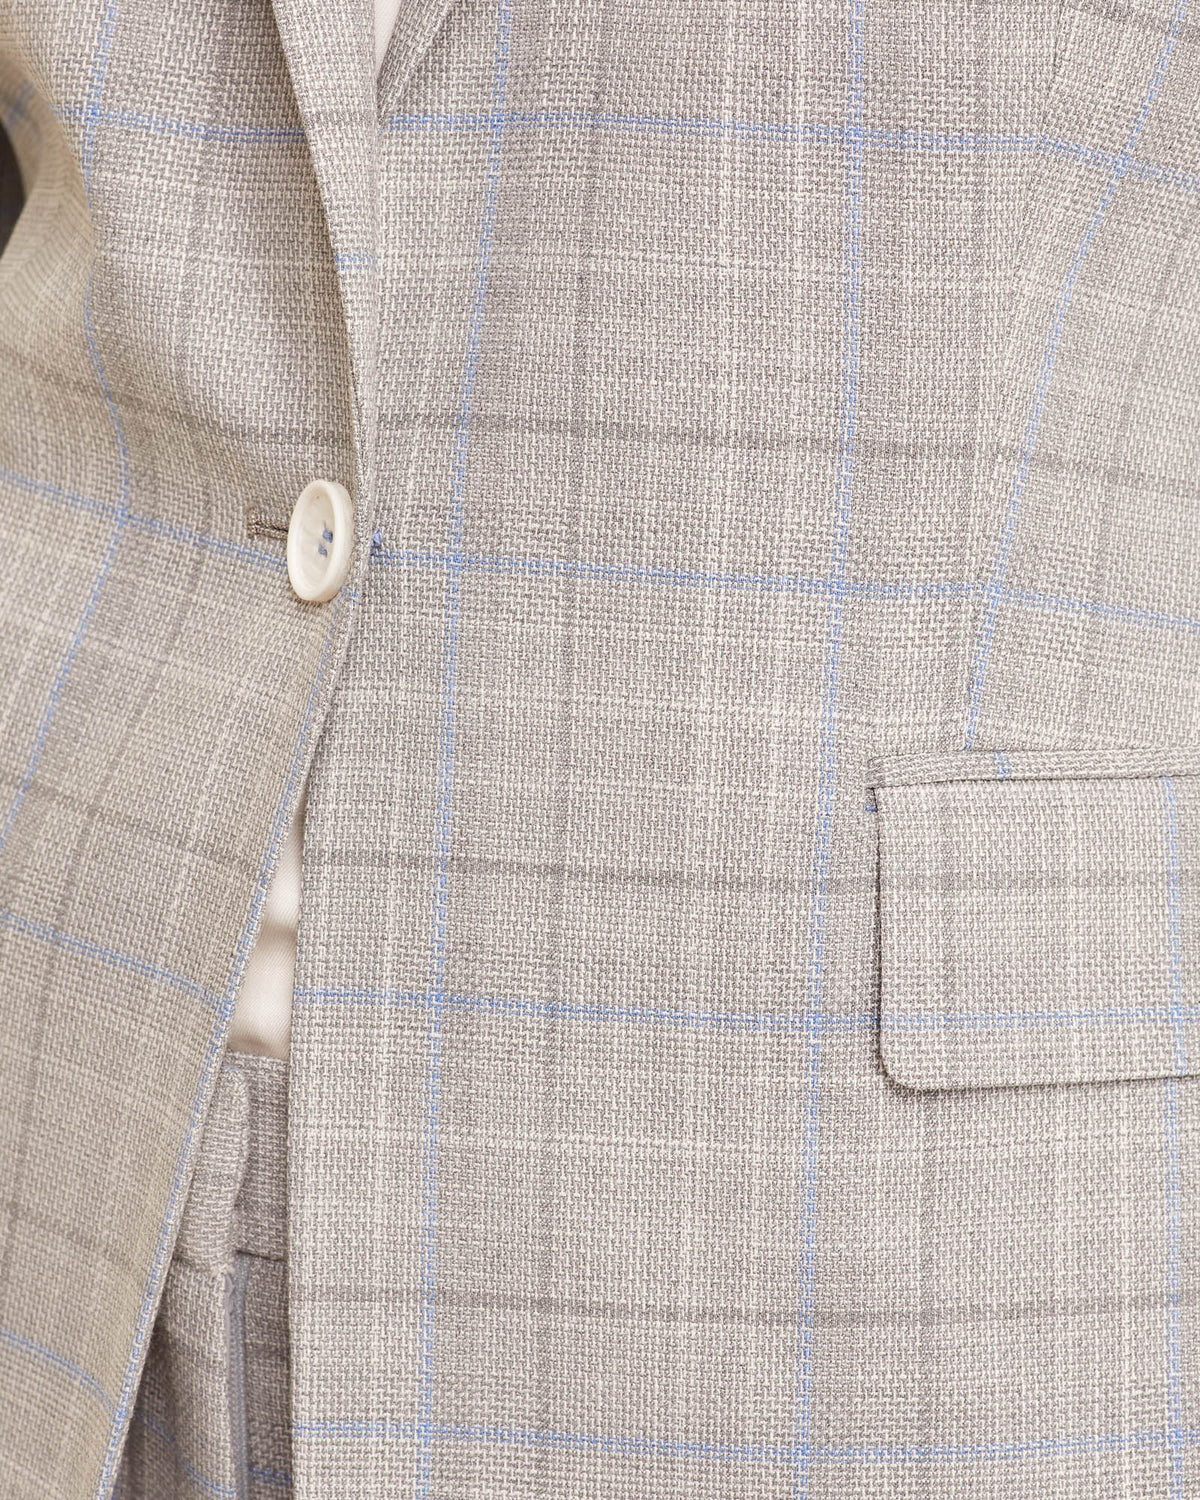 ALEXA ECO CHECK SUIT JACKET GREY/BLUE CHECK